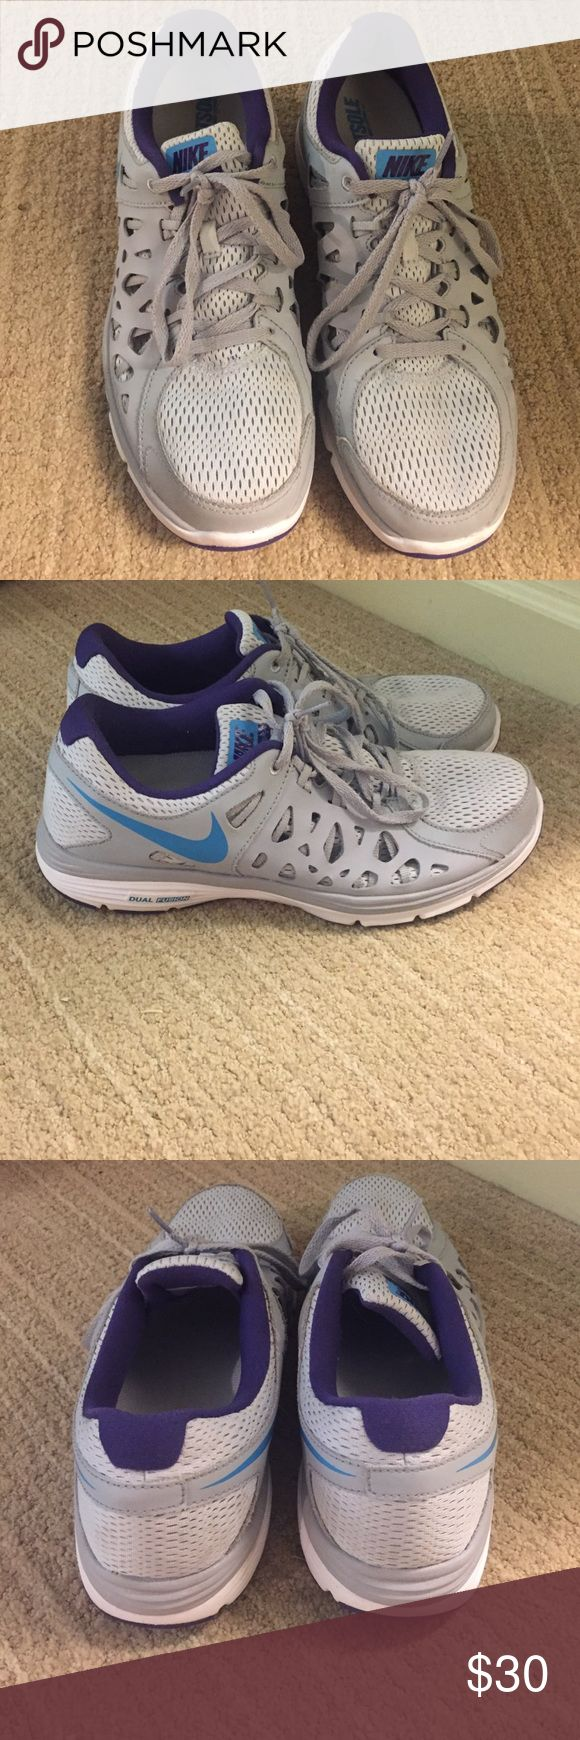 Nike dual fusion tennis shoes Worn once! Great condition Nike Shoes Athletic Shoes